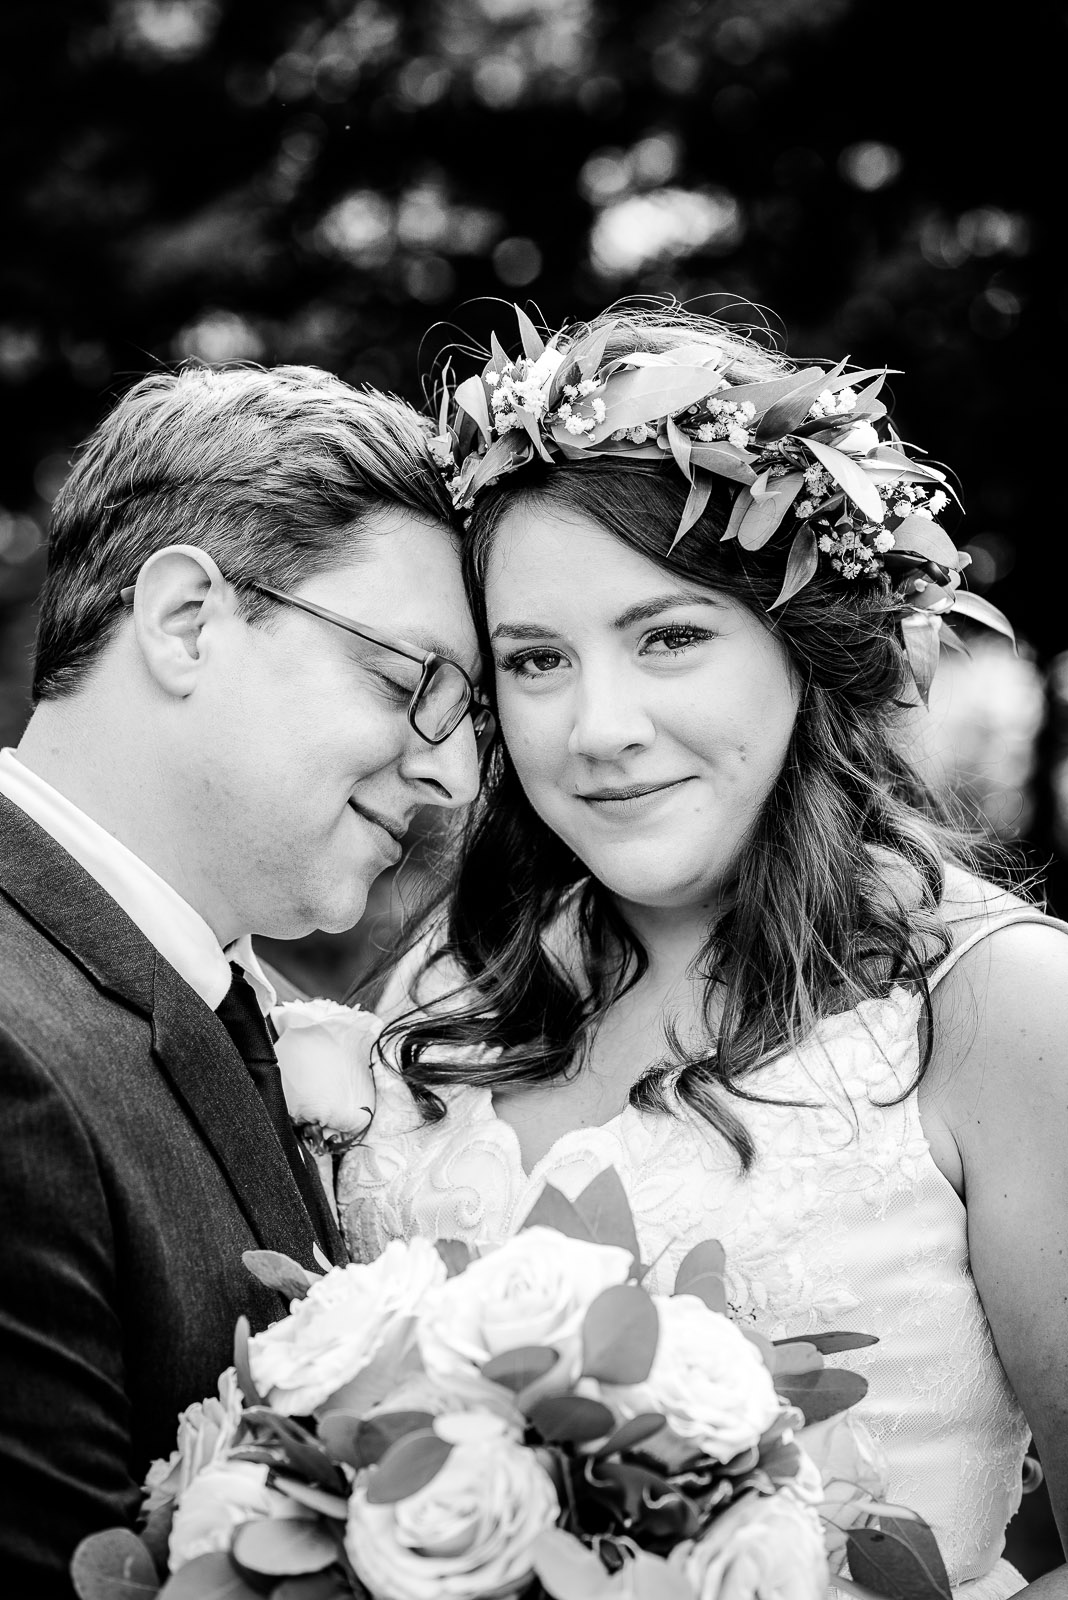 Eric_and_Christy_Photography_Blog_2018_Portraits-44